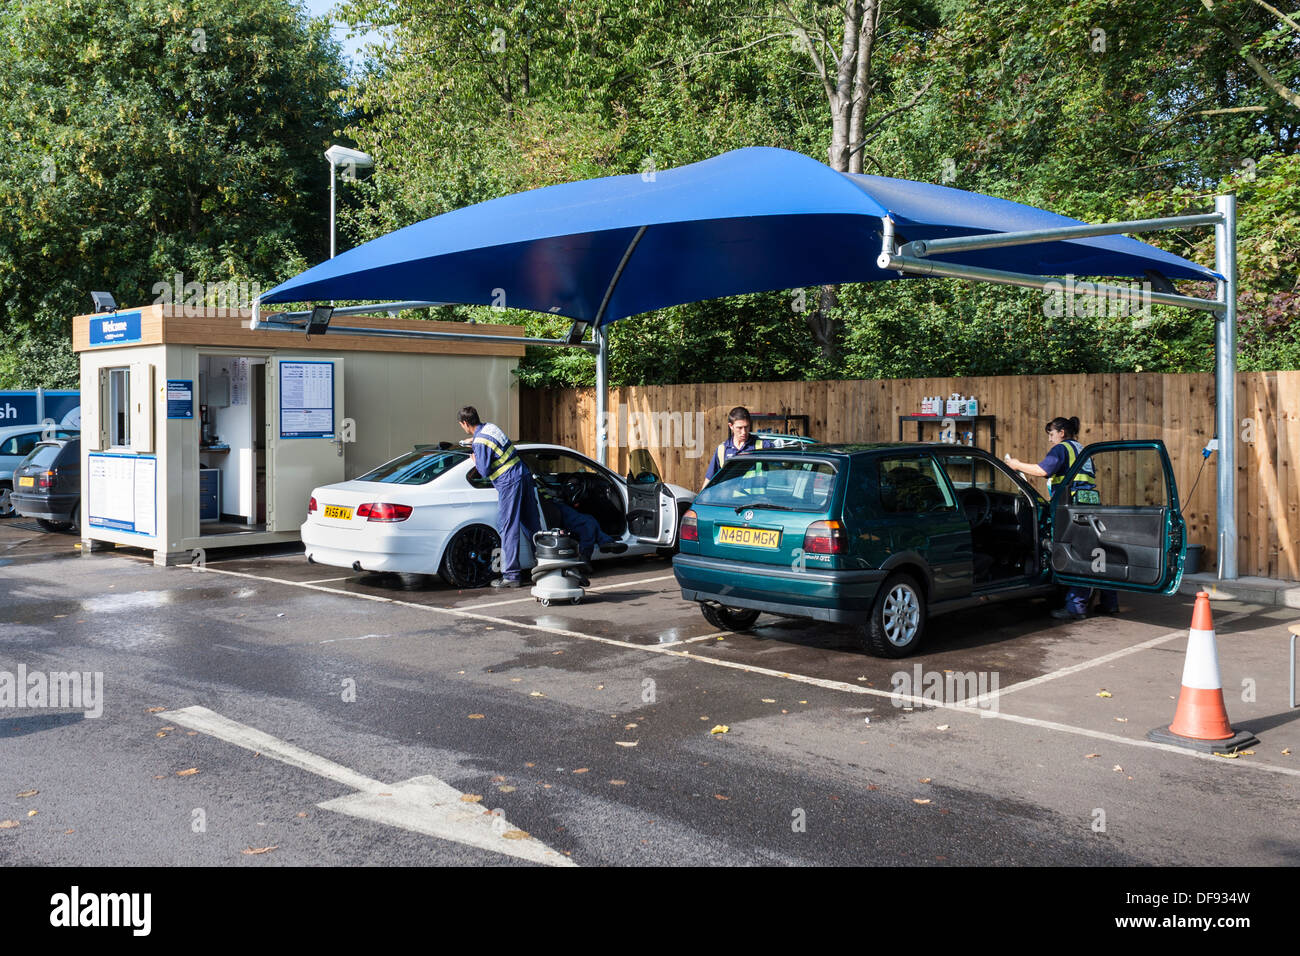 hand carwash service in tesco supermarket car park reading berkshire england gb